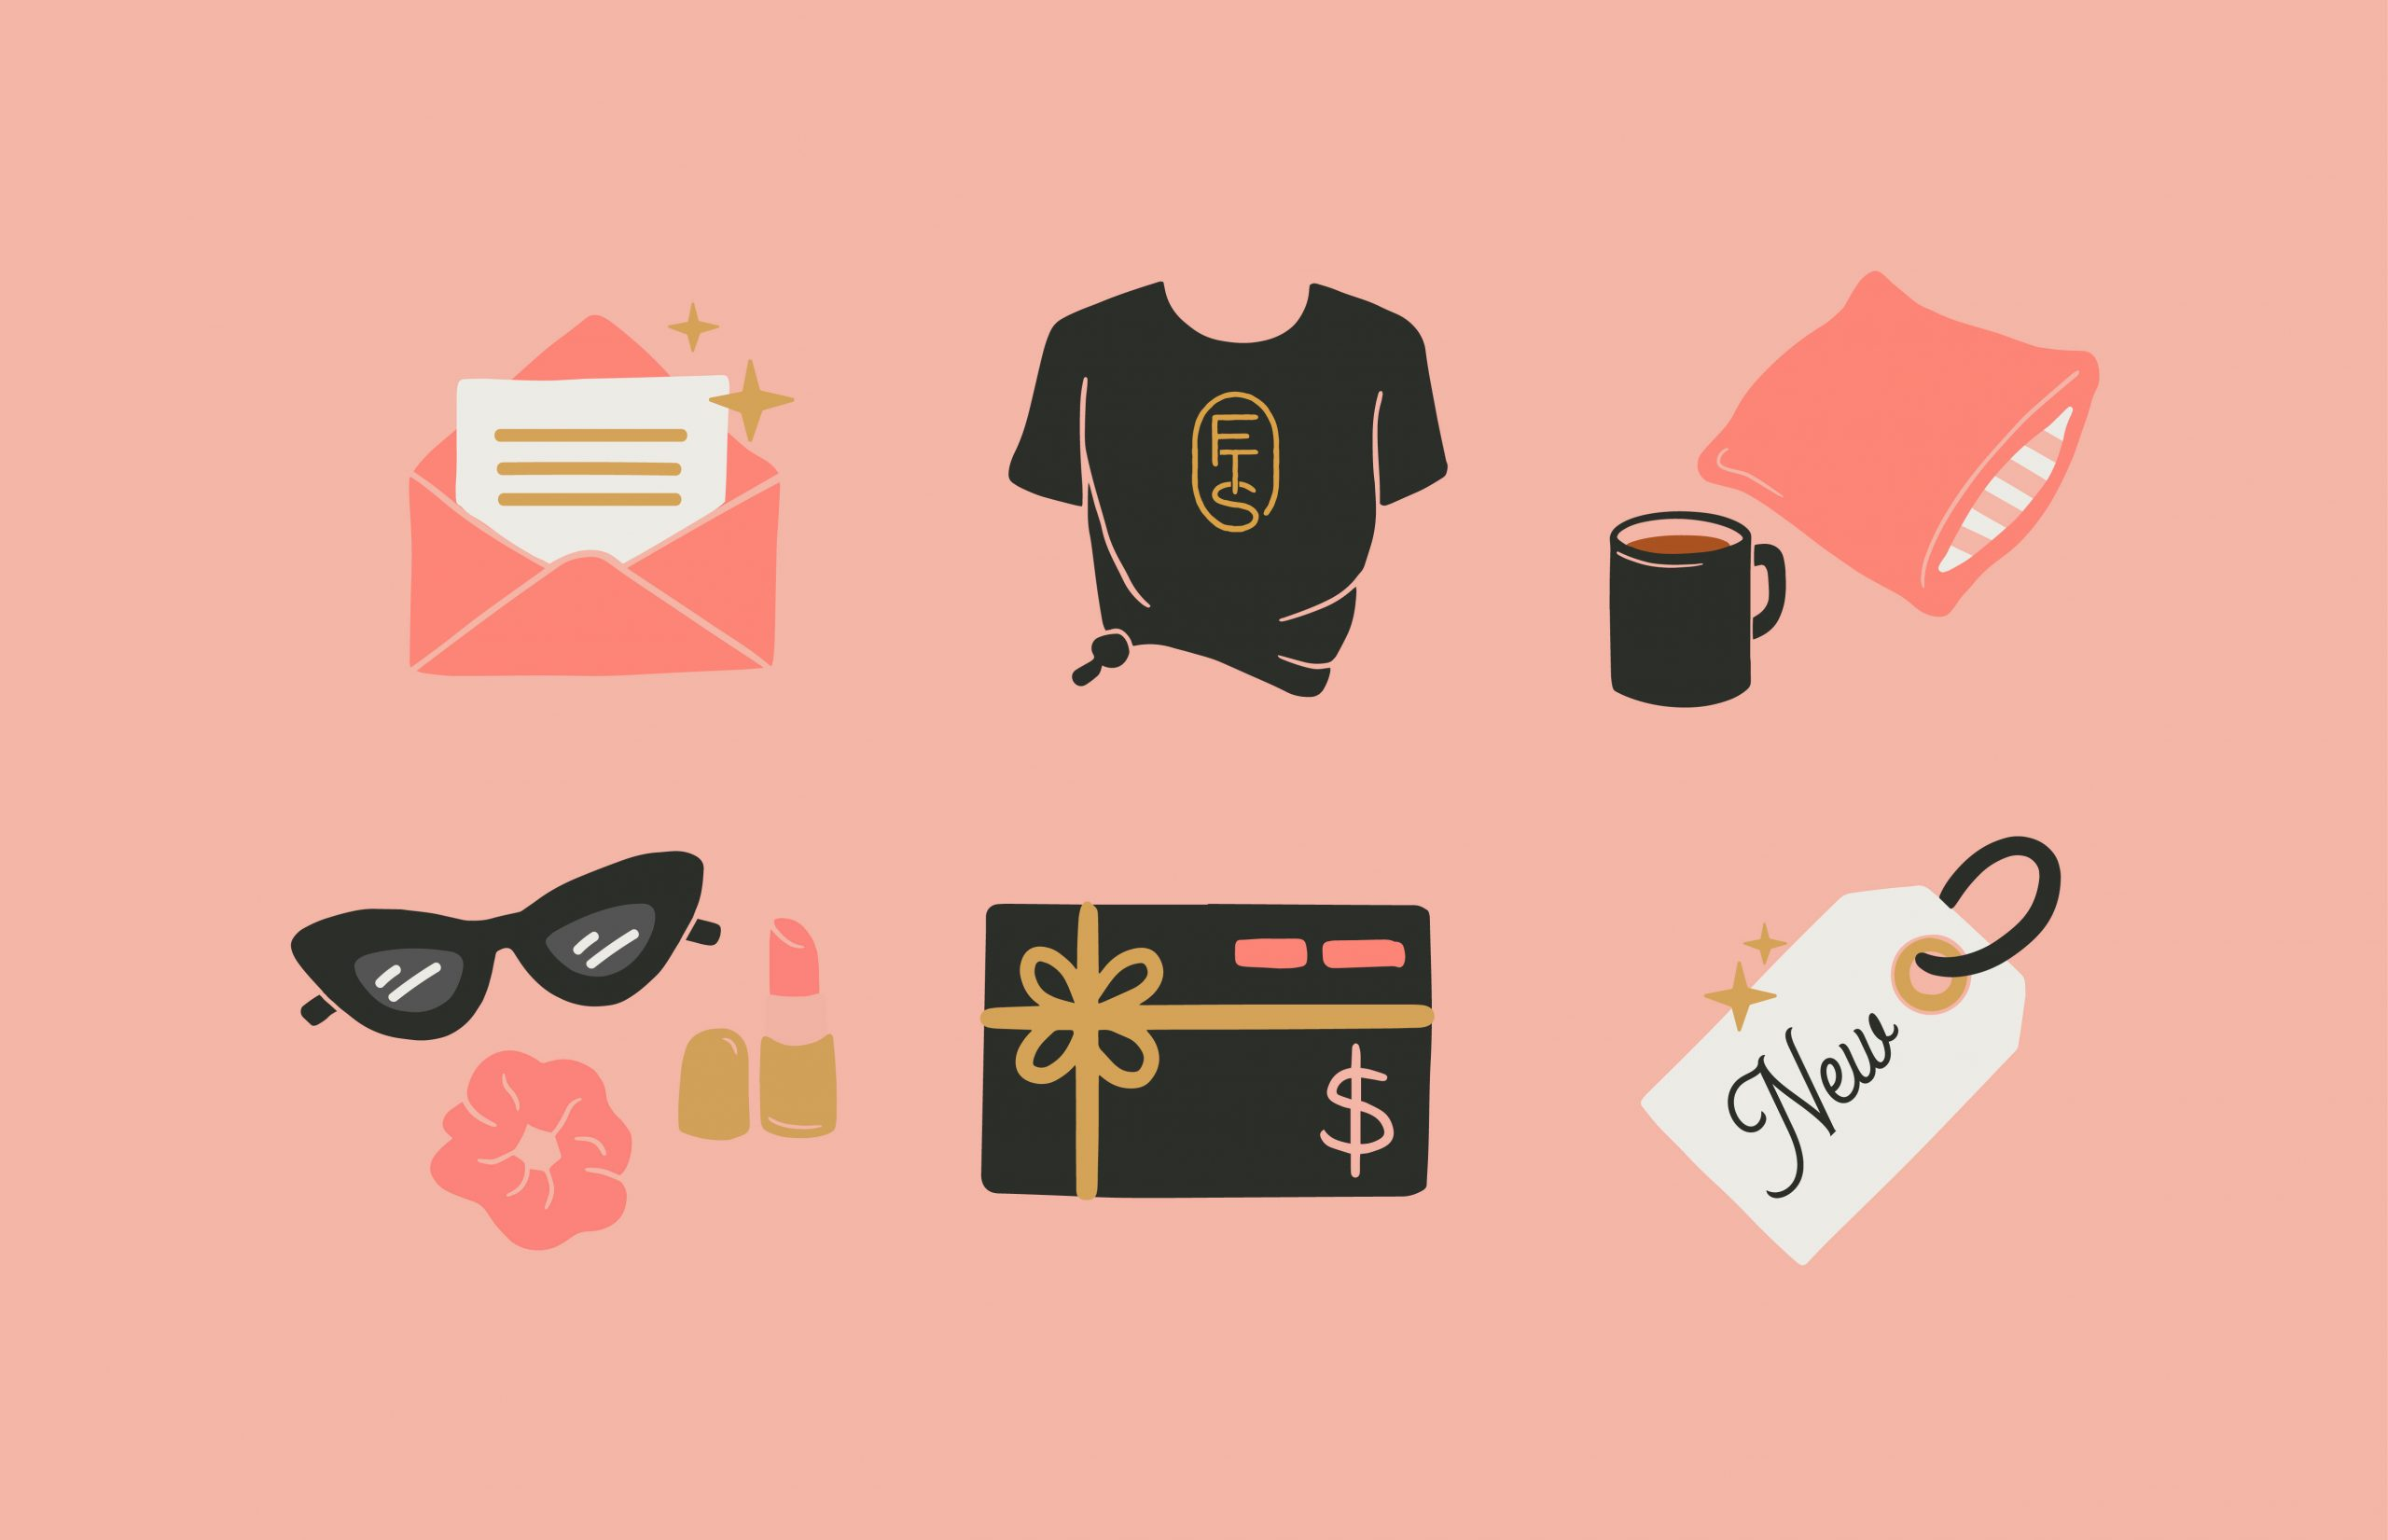 pink envelope icon, black tee shirt icon, pink pillow and black coffee mug icon, black sunglasses icon, black and pink gift card icon, white tag with New text icon